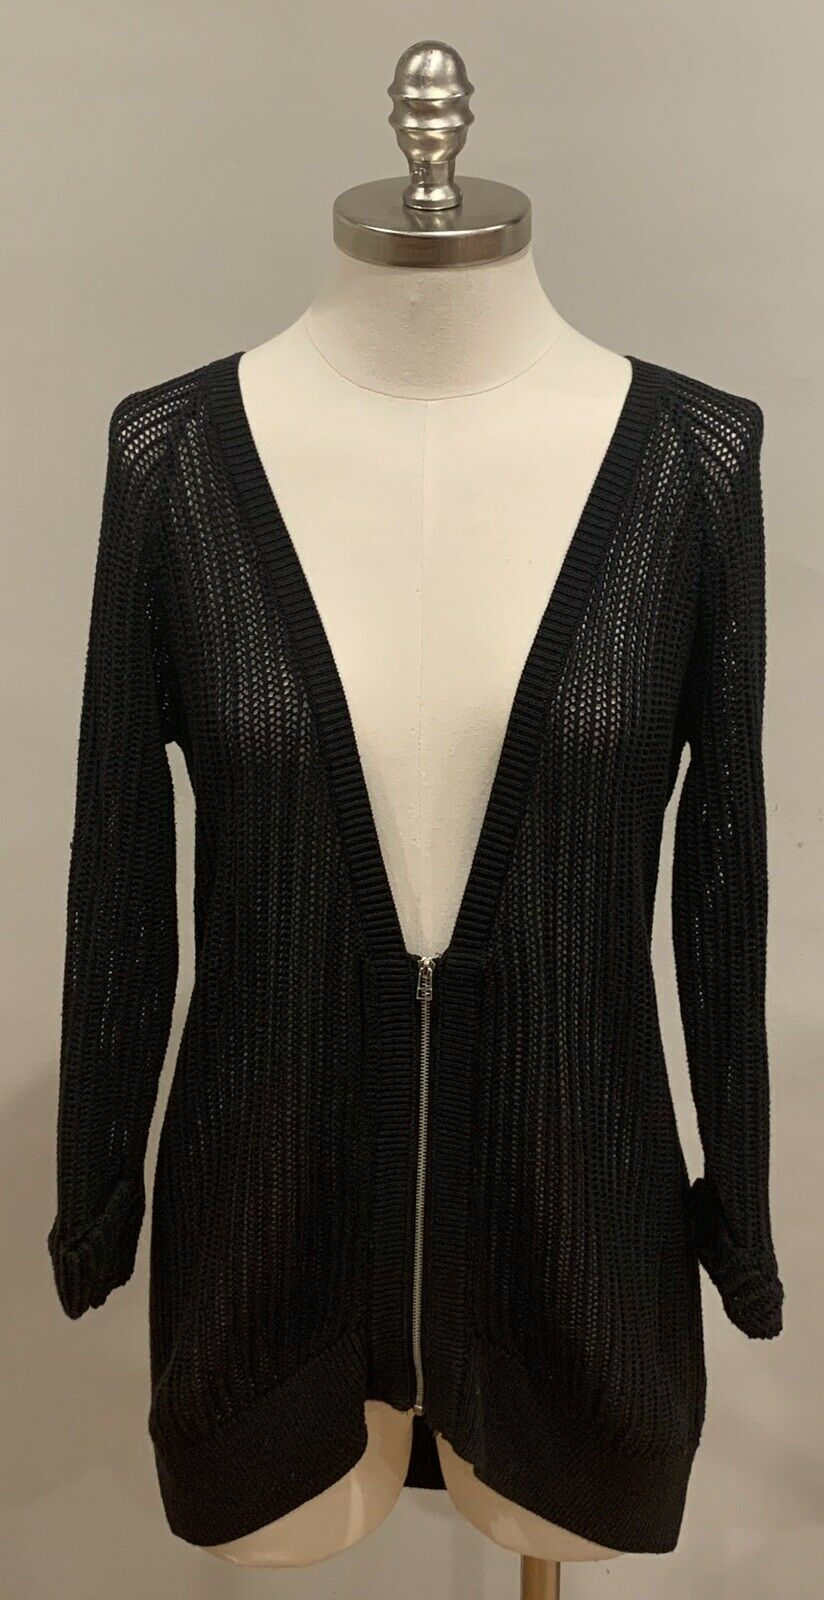 THE CALLIE CARDI Silver Zipper Deep V 3/4 Cuffed Sleeve Loose Knit Black Sweater Cardigan LAST ONE M